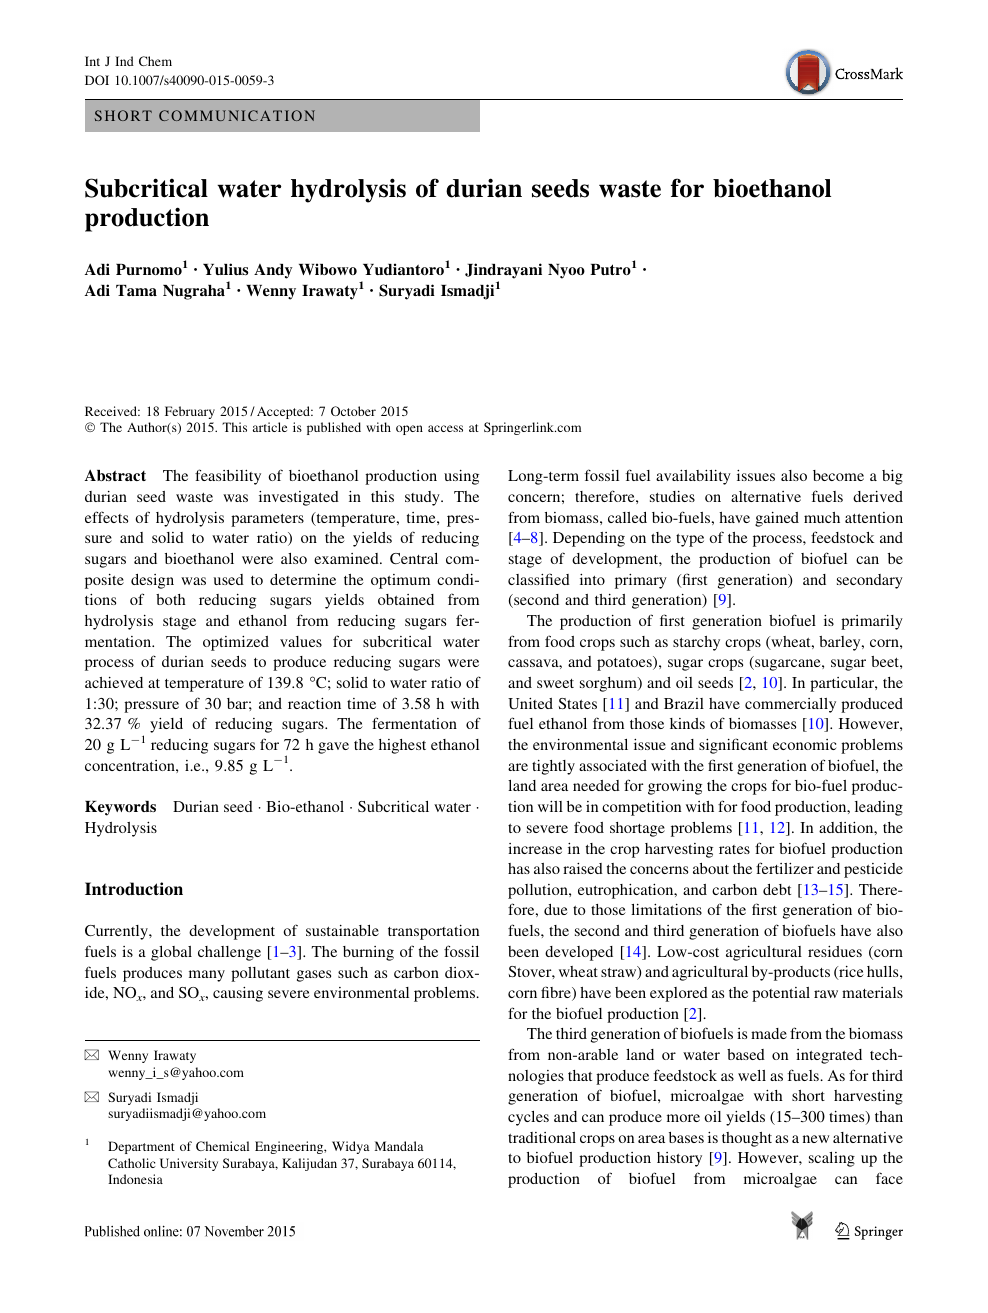 Subcritical water hydrolysis of durian seeds waste for bioethanol